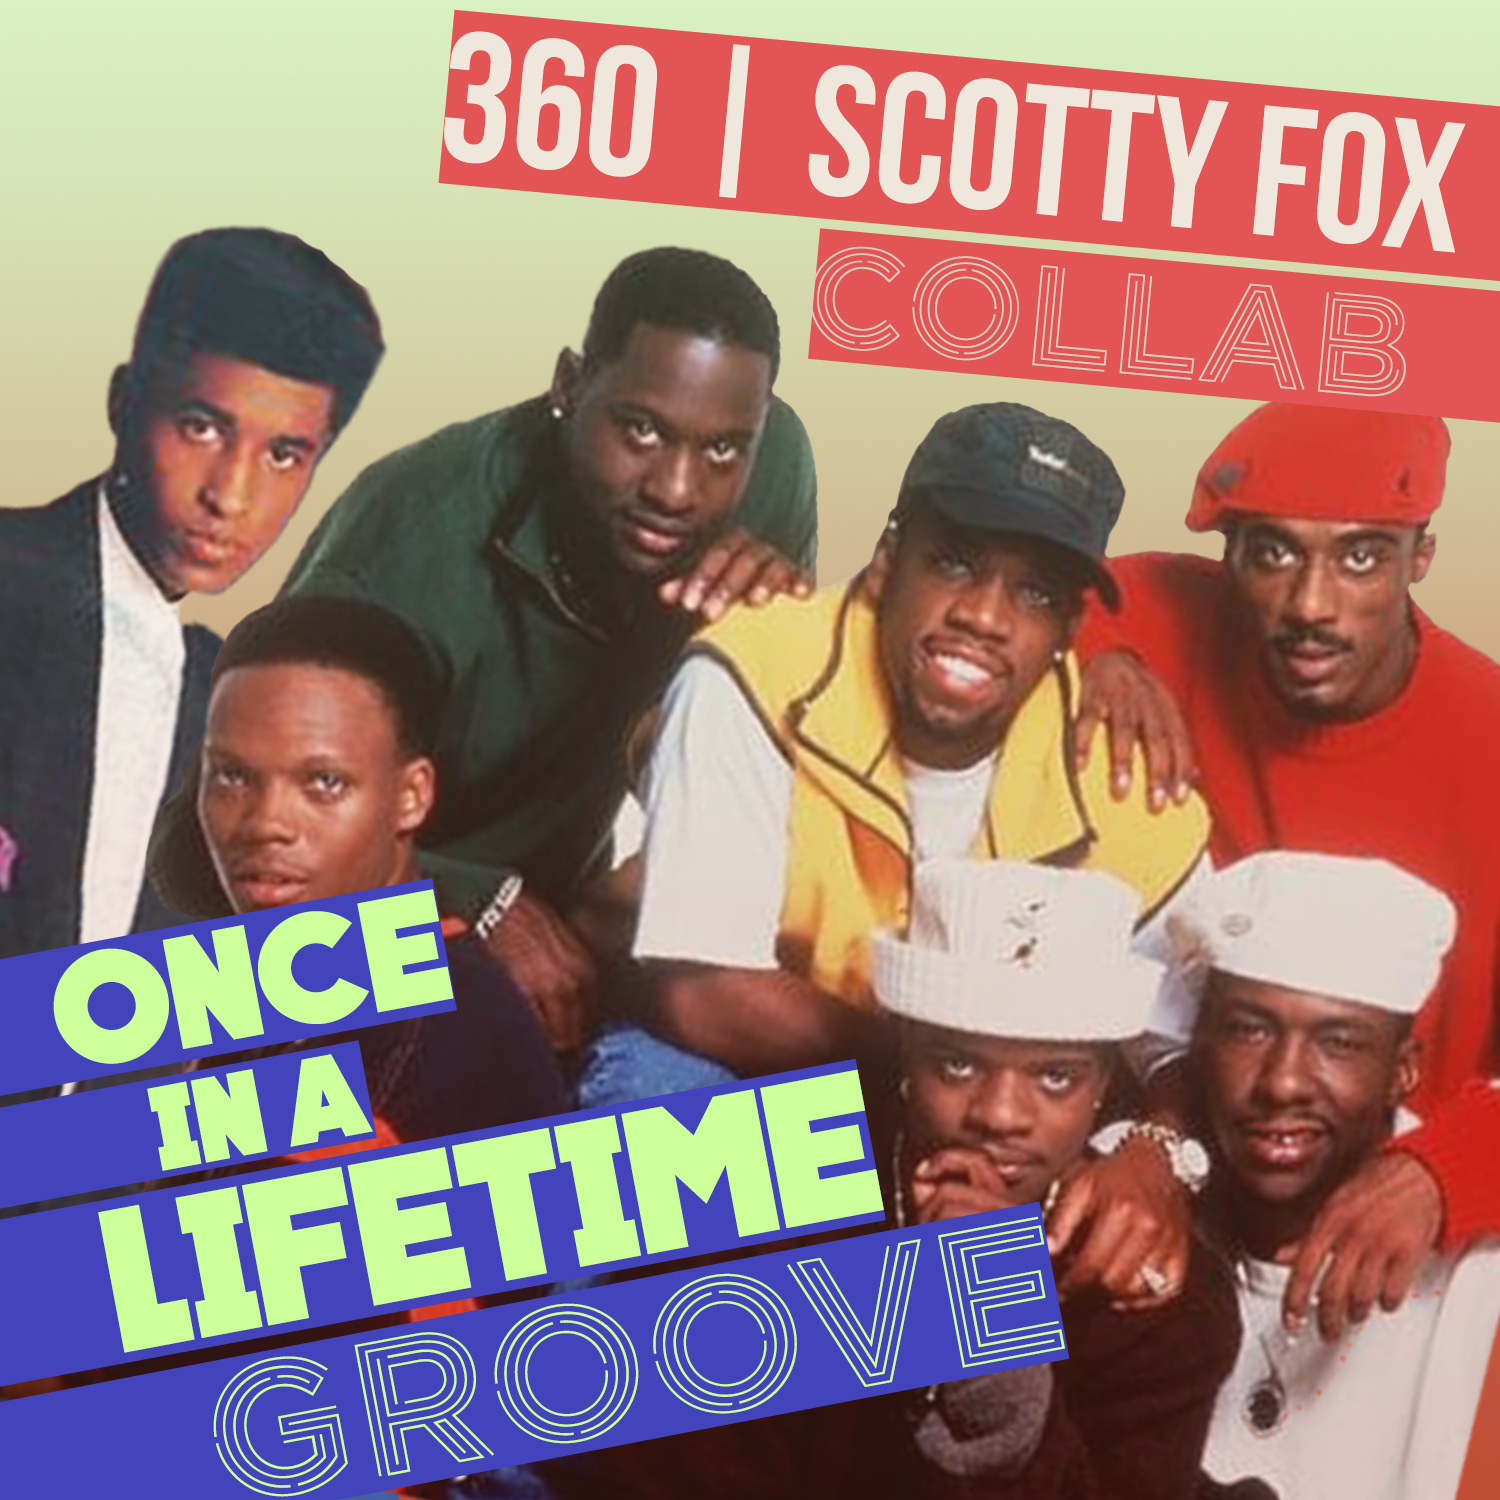 Once In A Lifetime Groove Ft. Scotty Fox